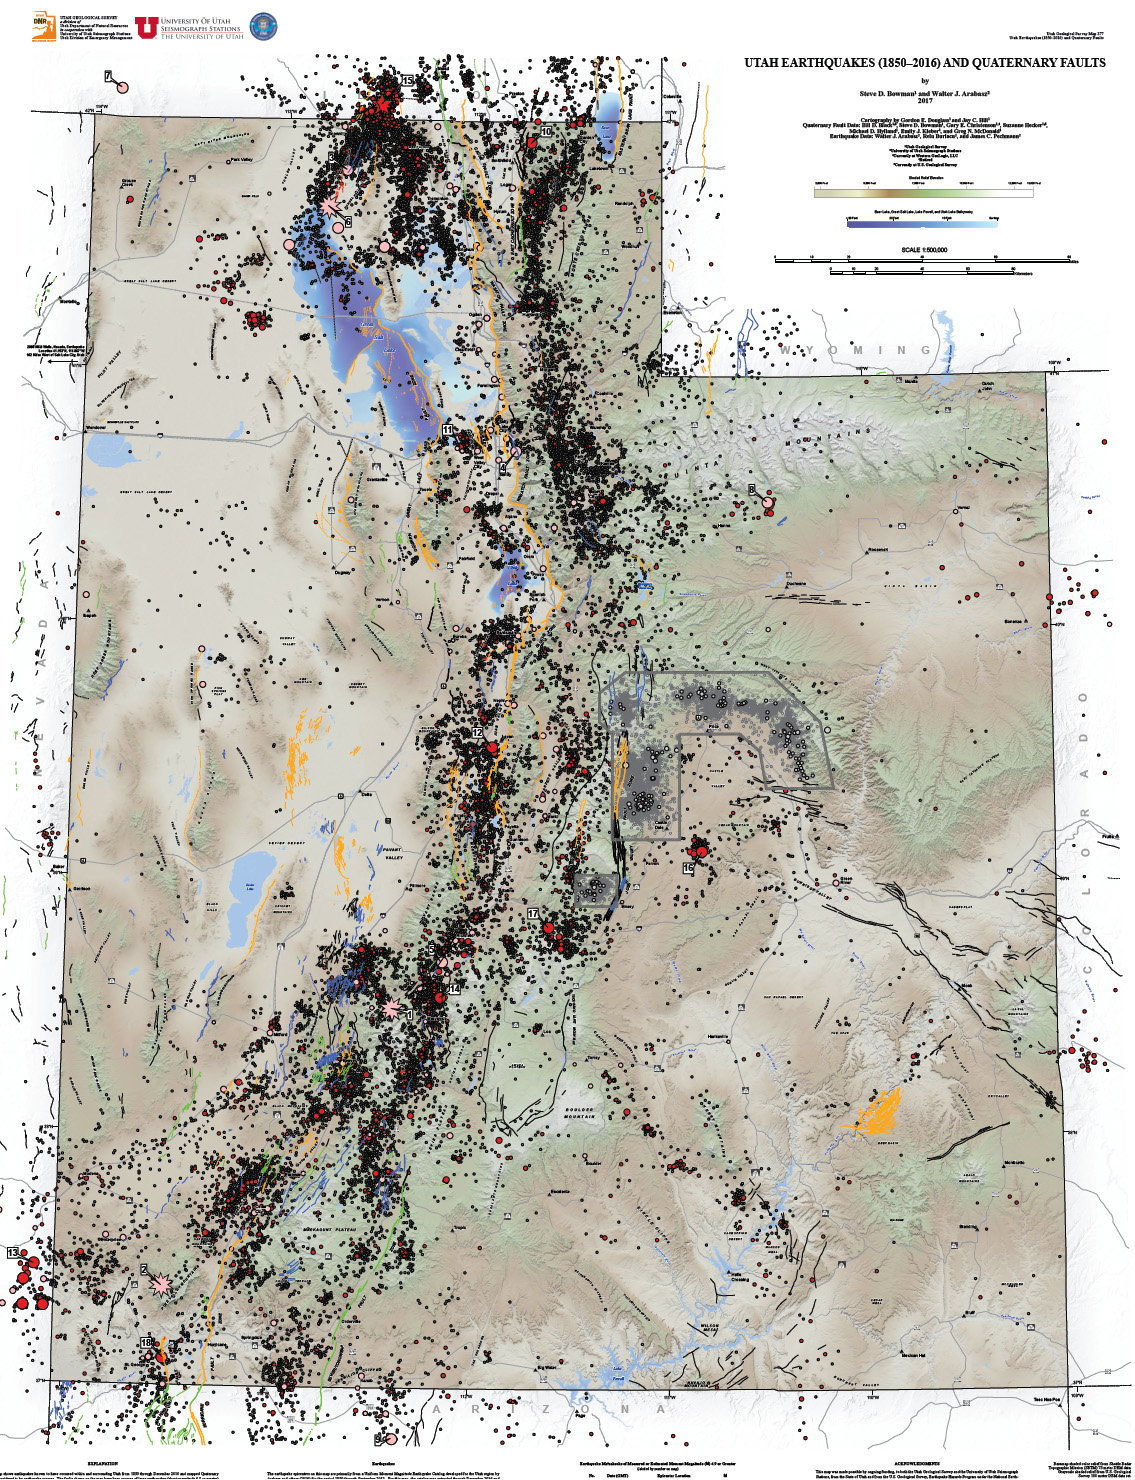 Earthquake epicenters and Quaternary faults in Utah